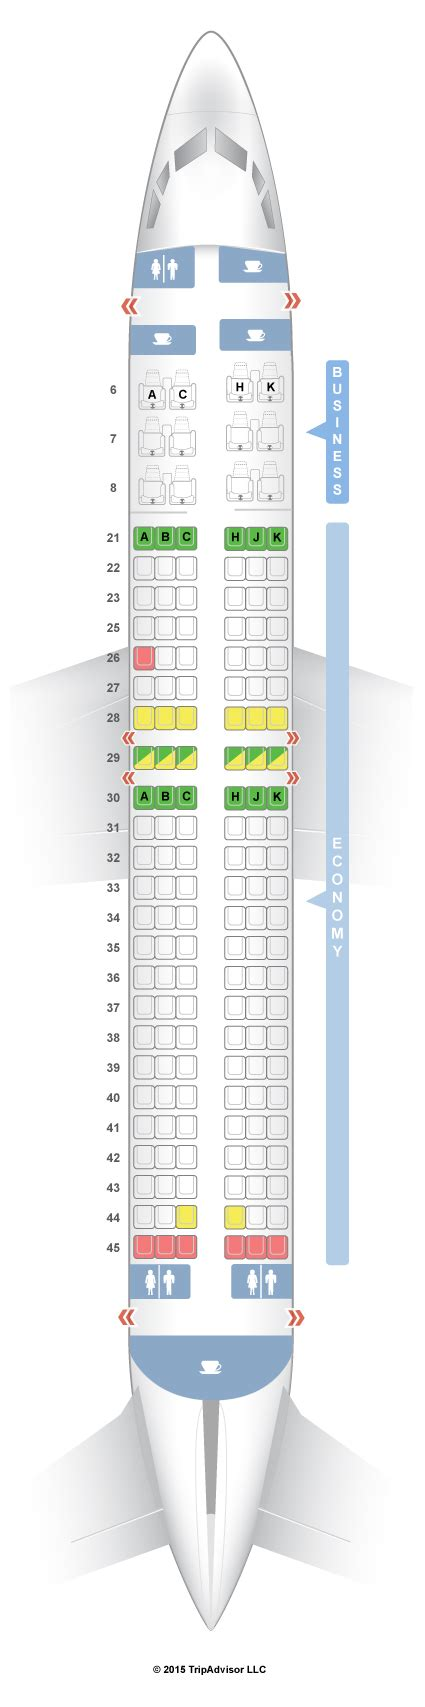 seatguru seat map garuda indonesia boeing